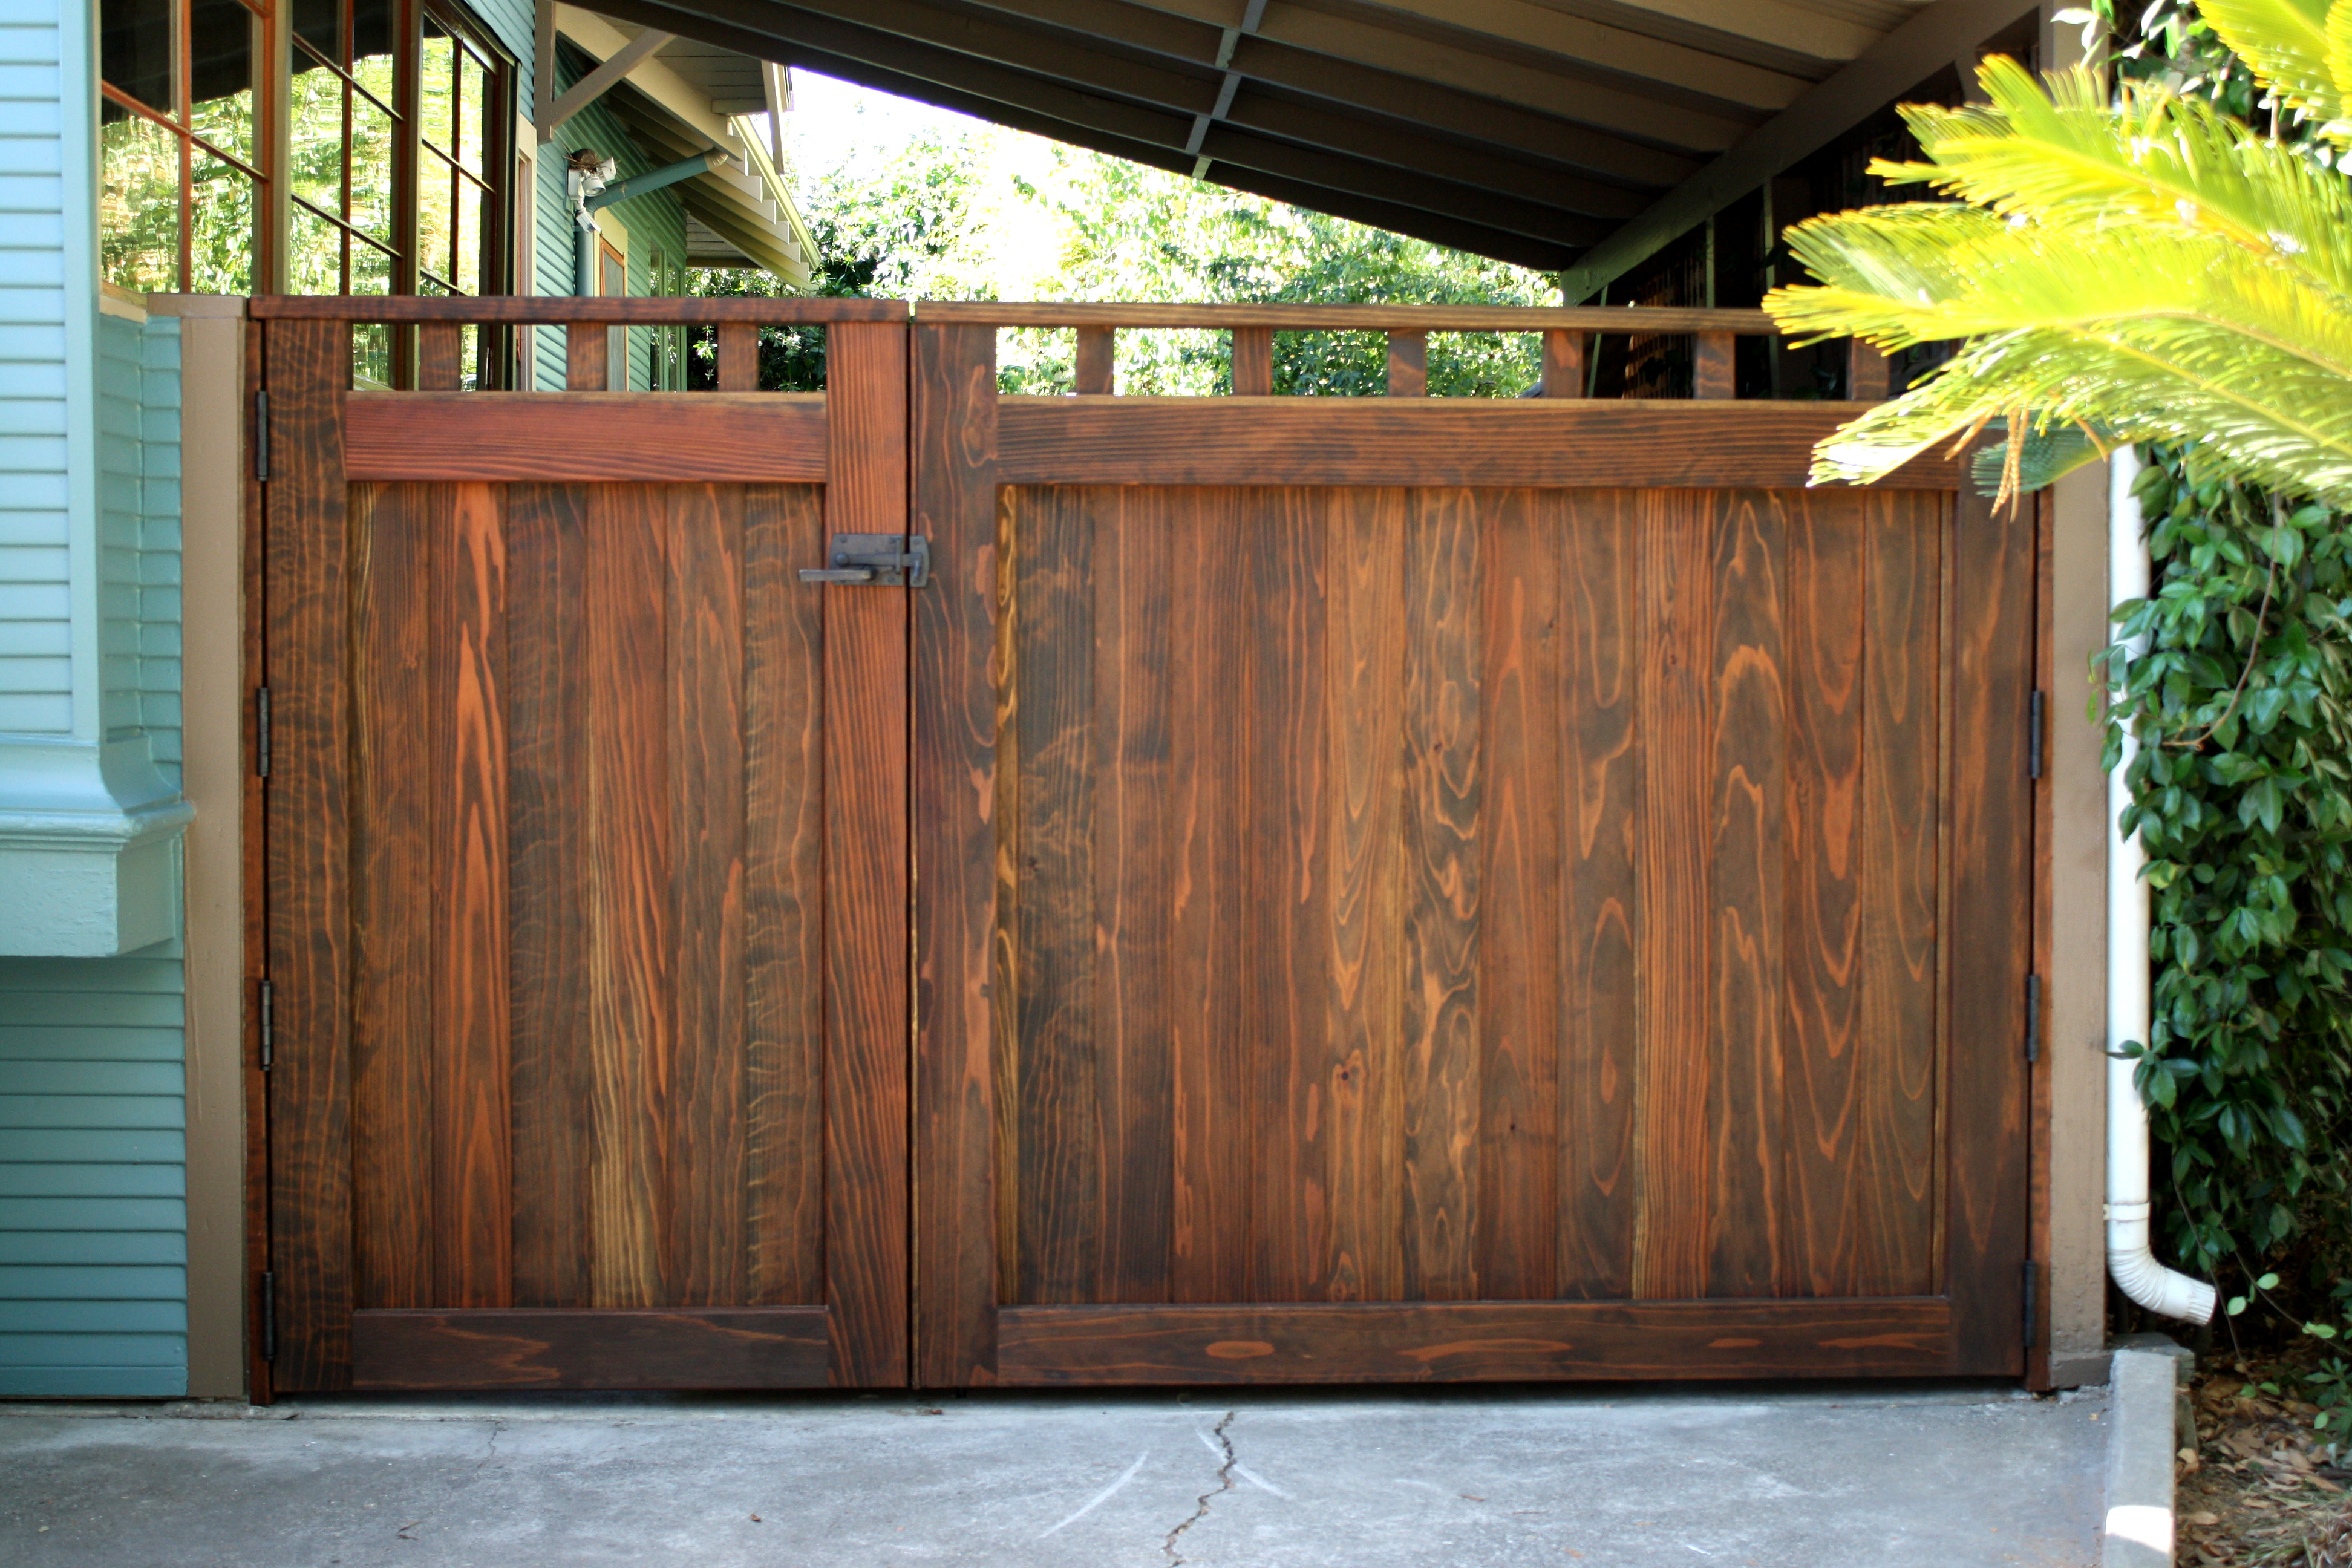 double-wood-driveway-courtyard-gate-in-craftsman-style.jpg